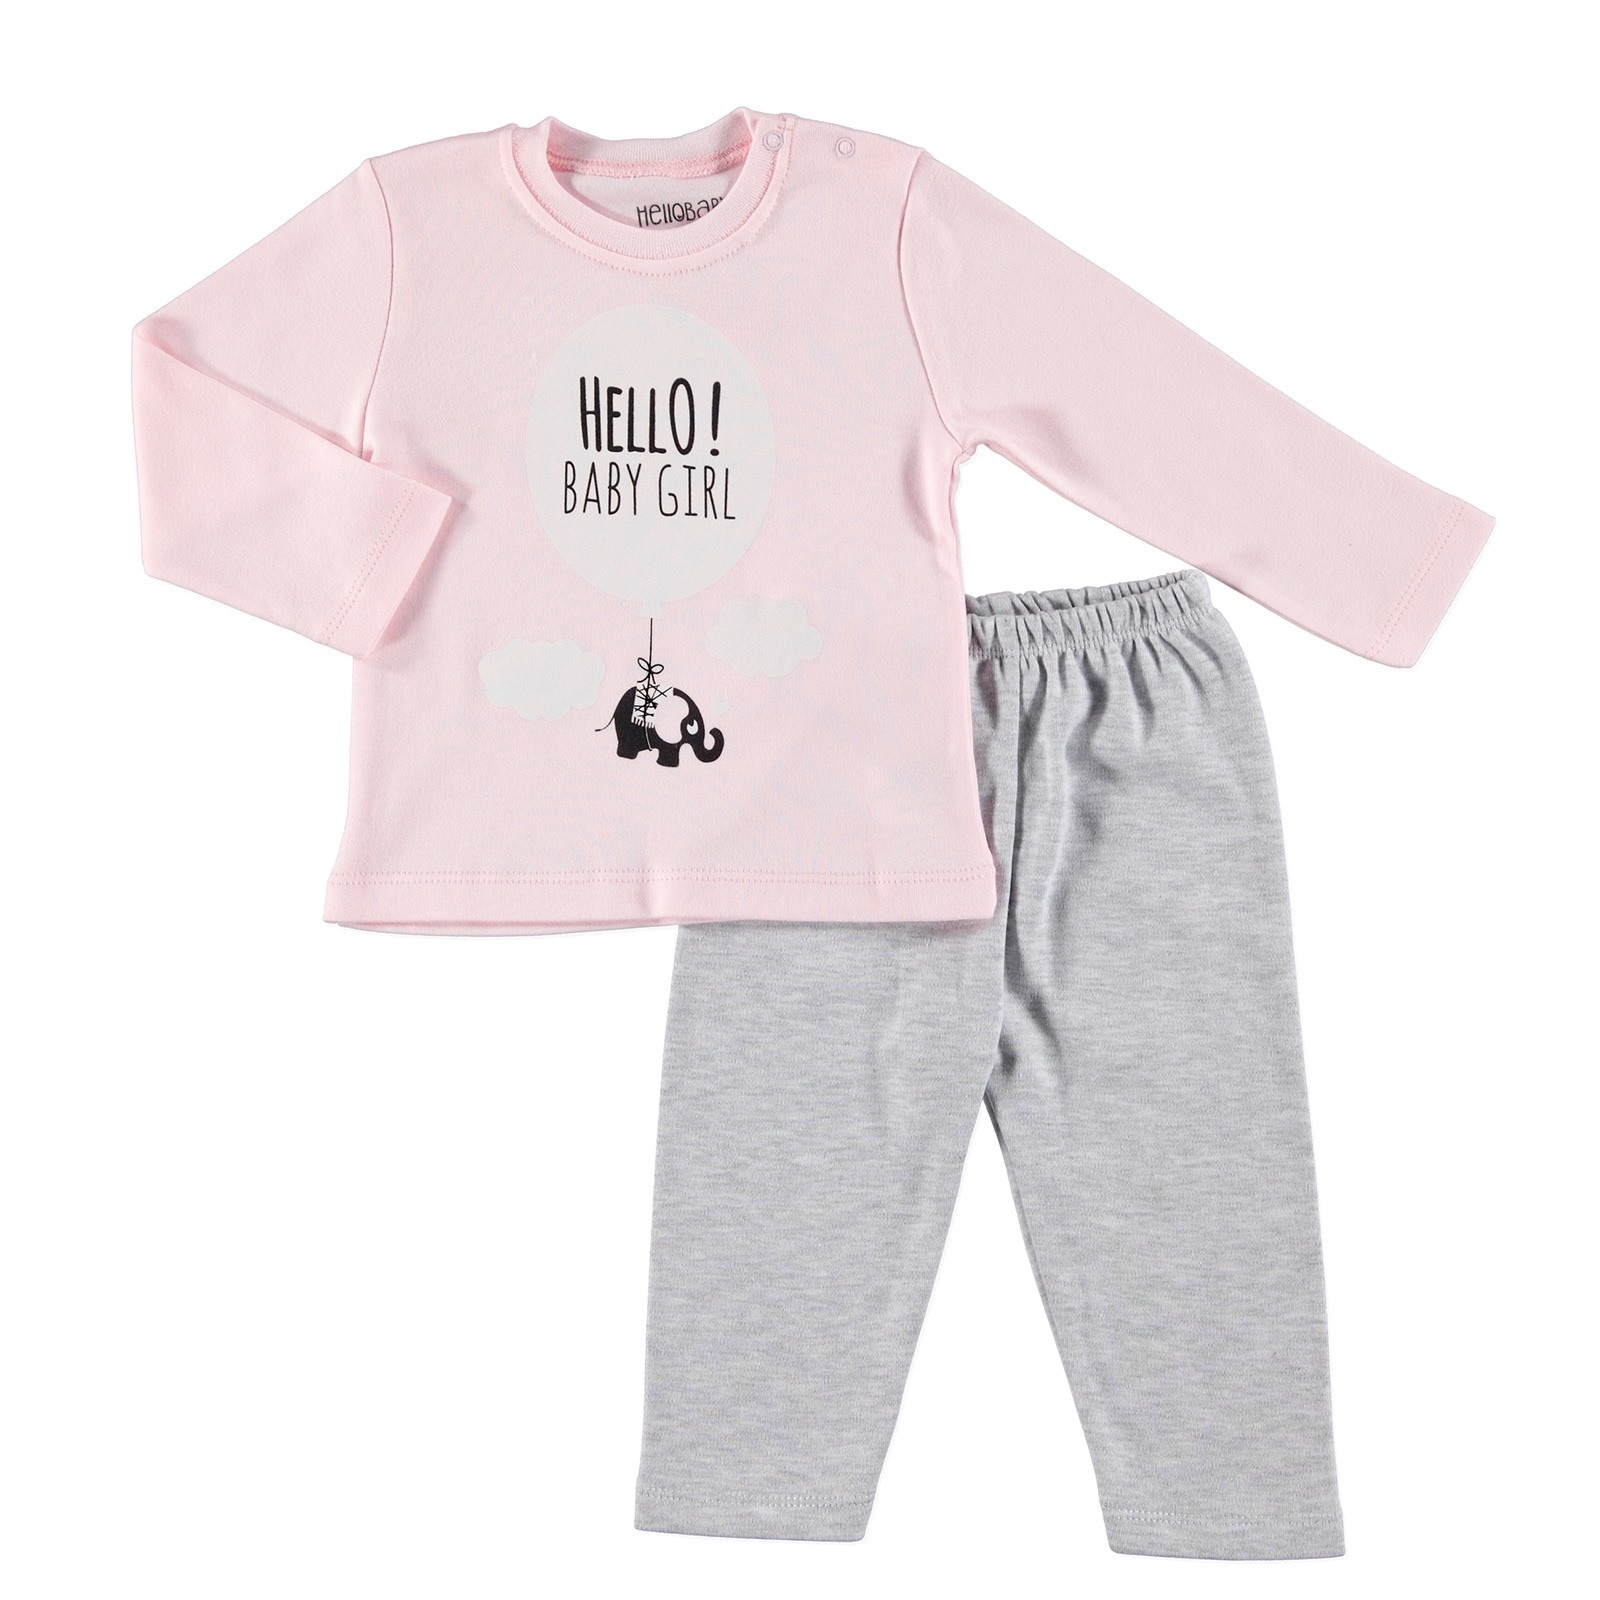 Ebebek HelloBaby Long Sleeve Pyjamas Set